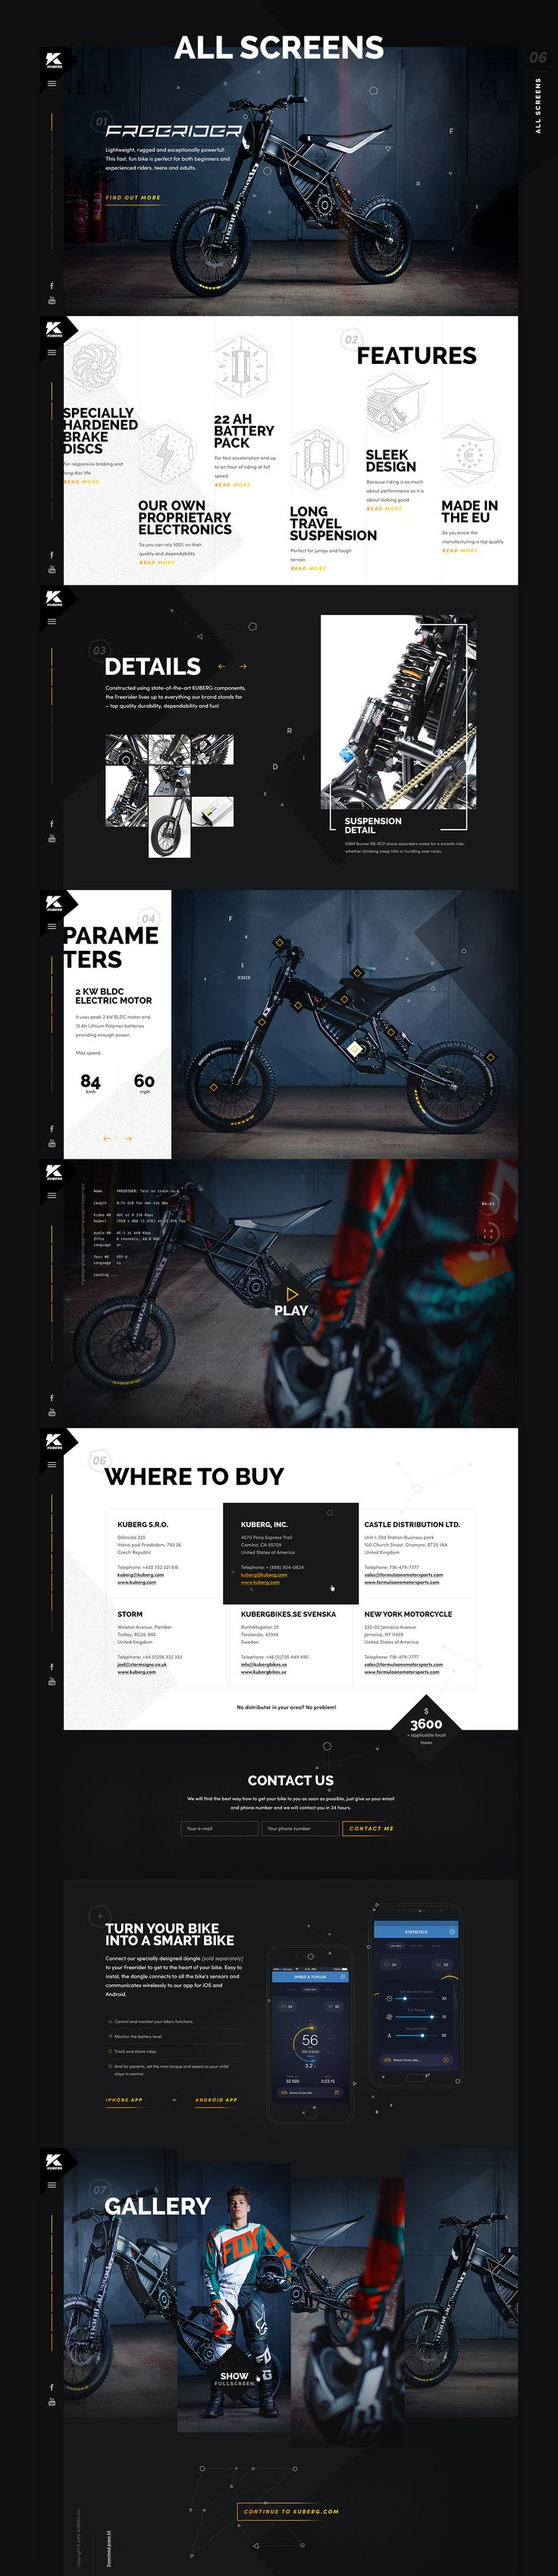 Kuberg, manufacturer of electric motorcycles, released their brand new model called FREE RIDER and I was asked to design a microsite showing this awesome and fun bike. It's a simple one-page website with few sections. I've used bold and heavy typography i…